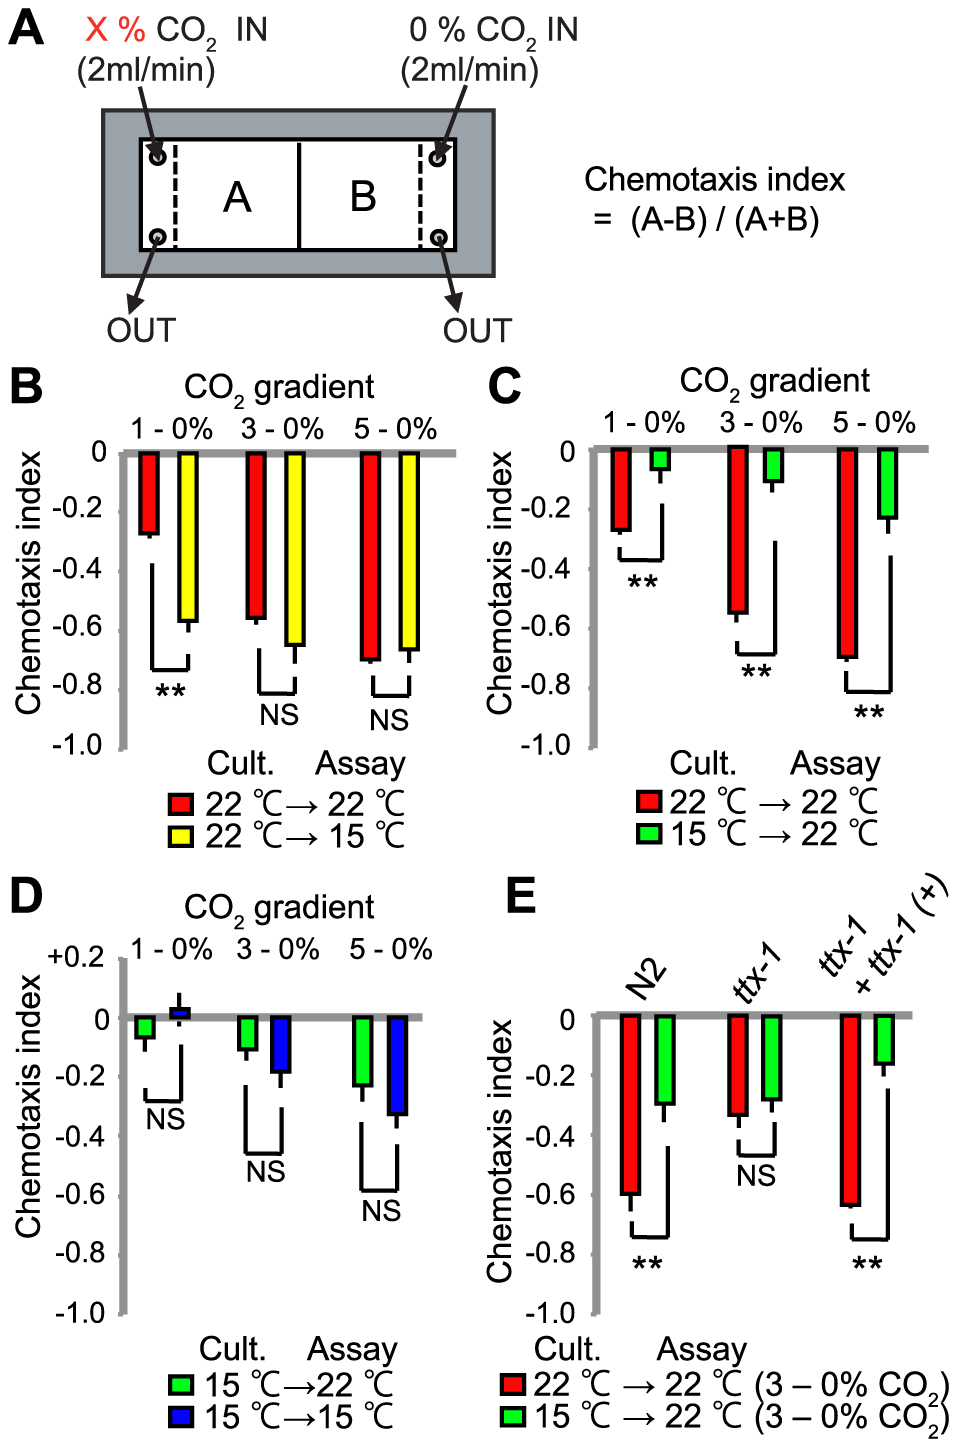 CO<sub>2</sub> avoidance is modulated by acclimation temperature.